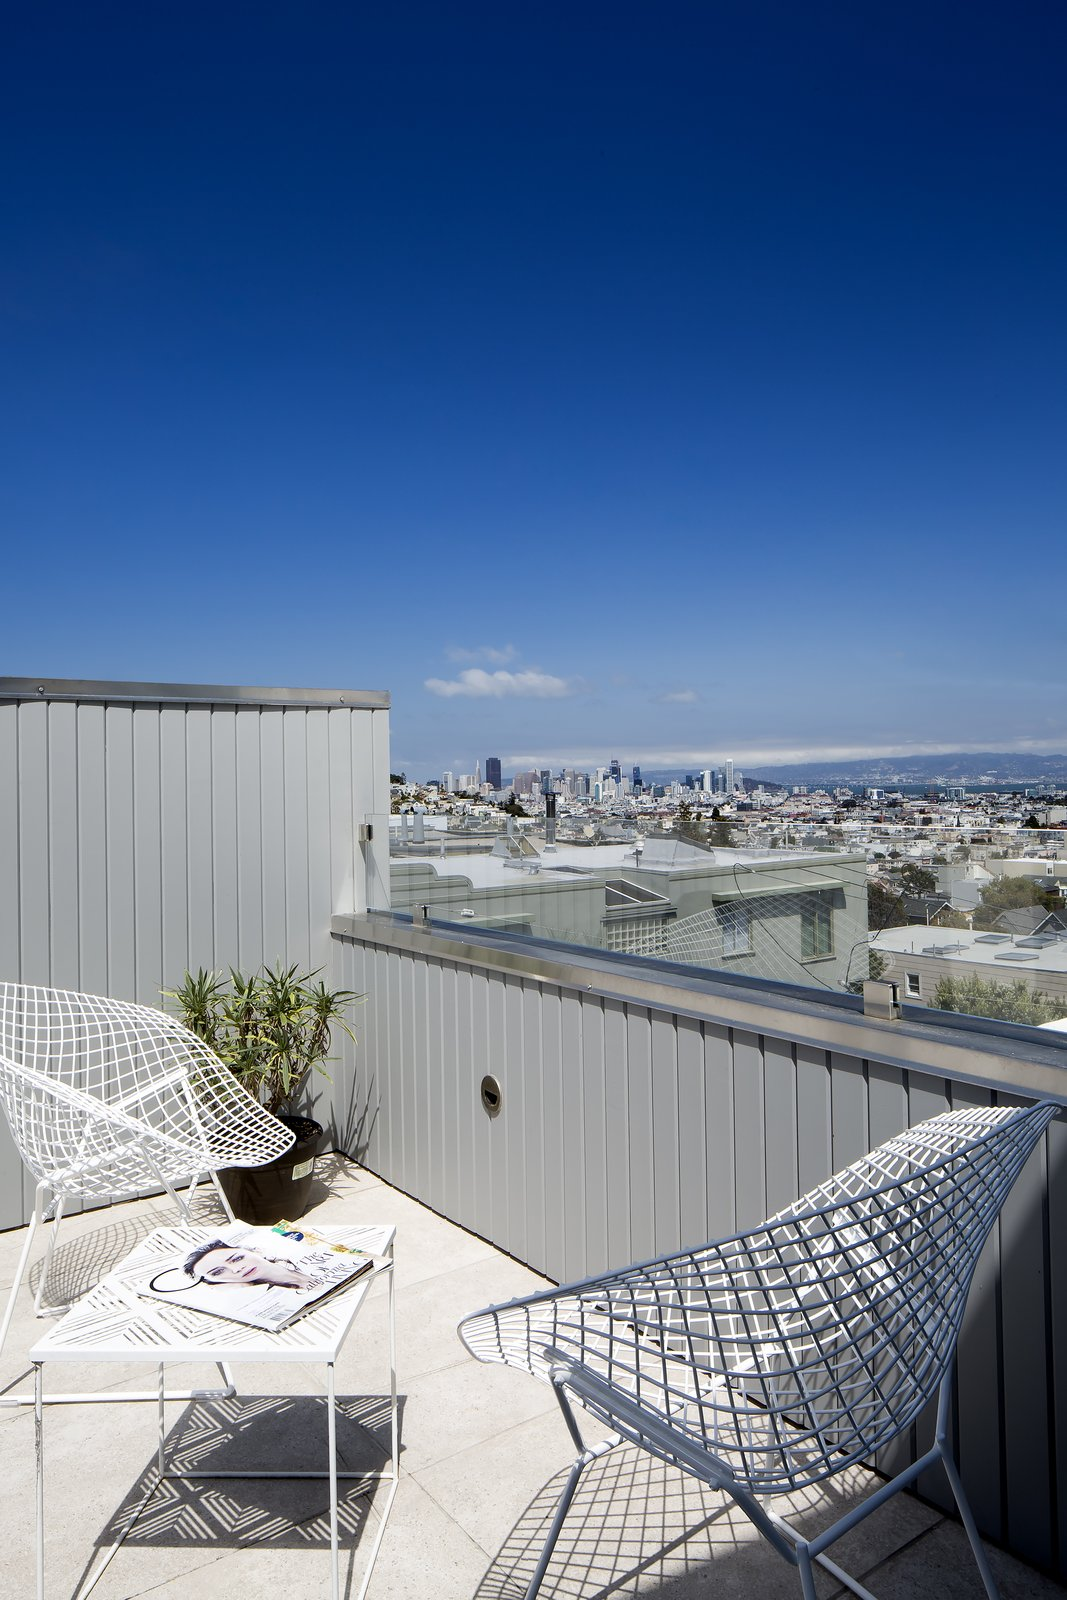 Roof deck  27th Street - Noe Valley by patrick perez/designpad architecture